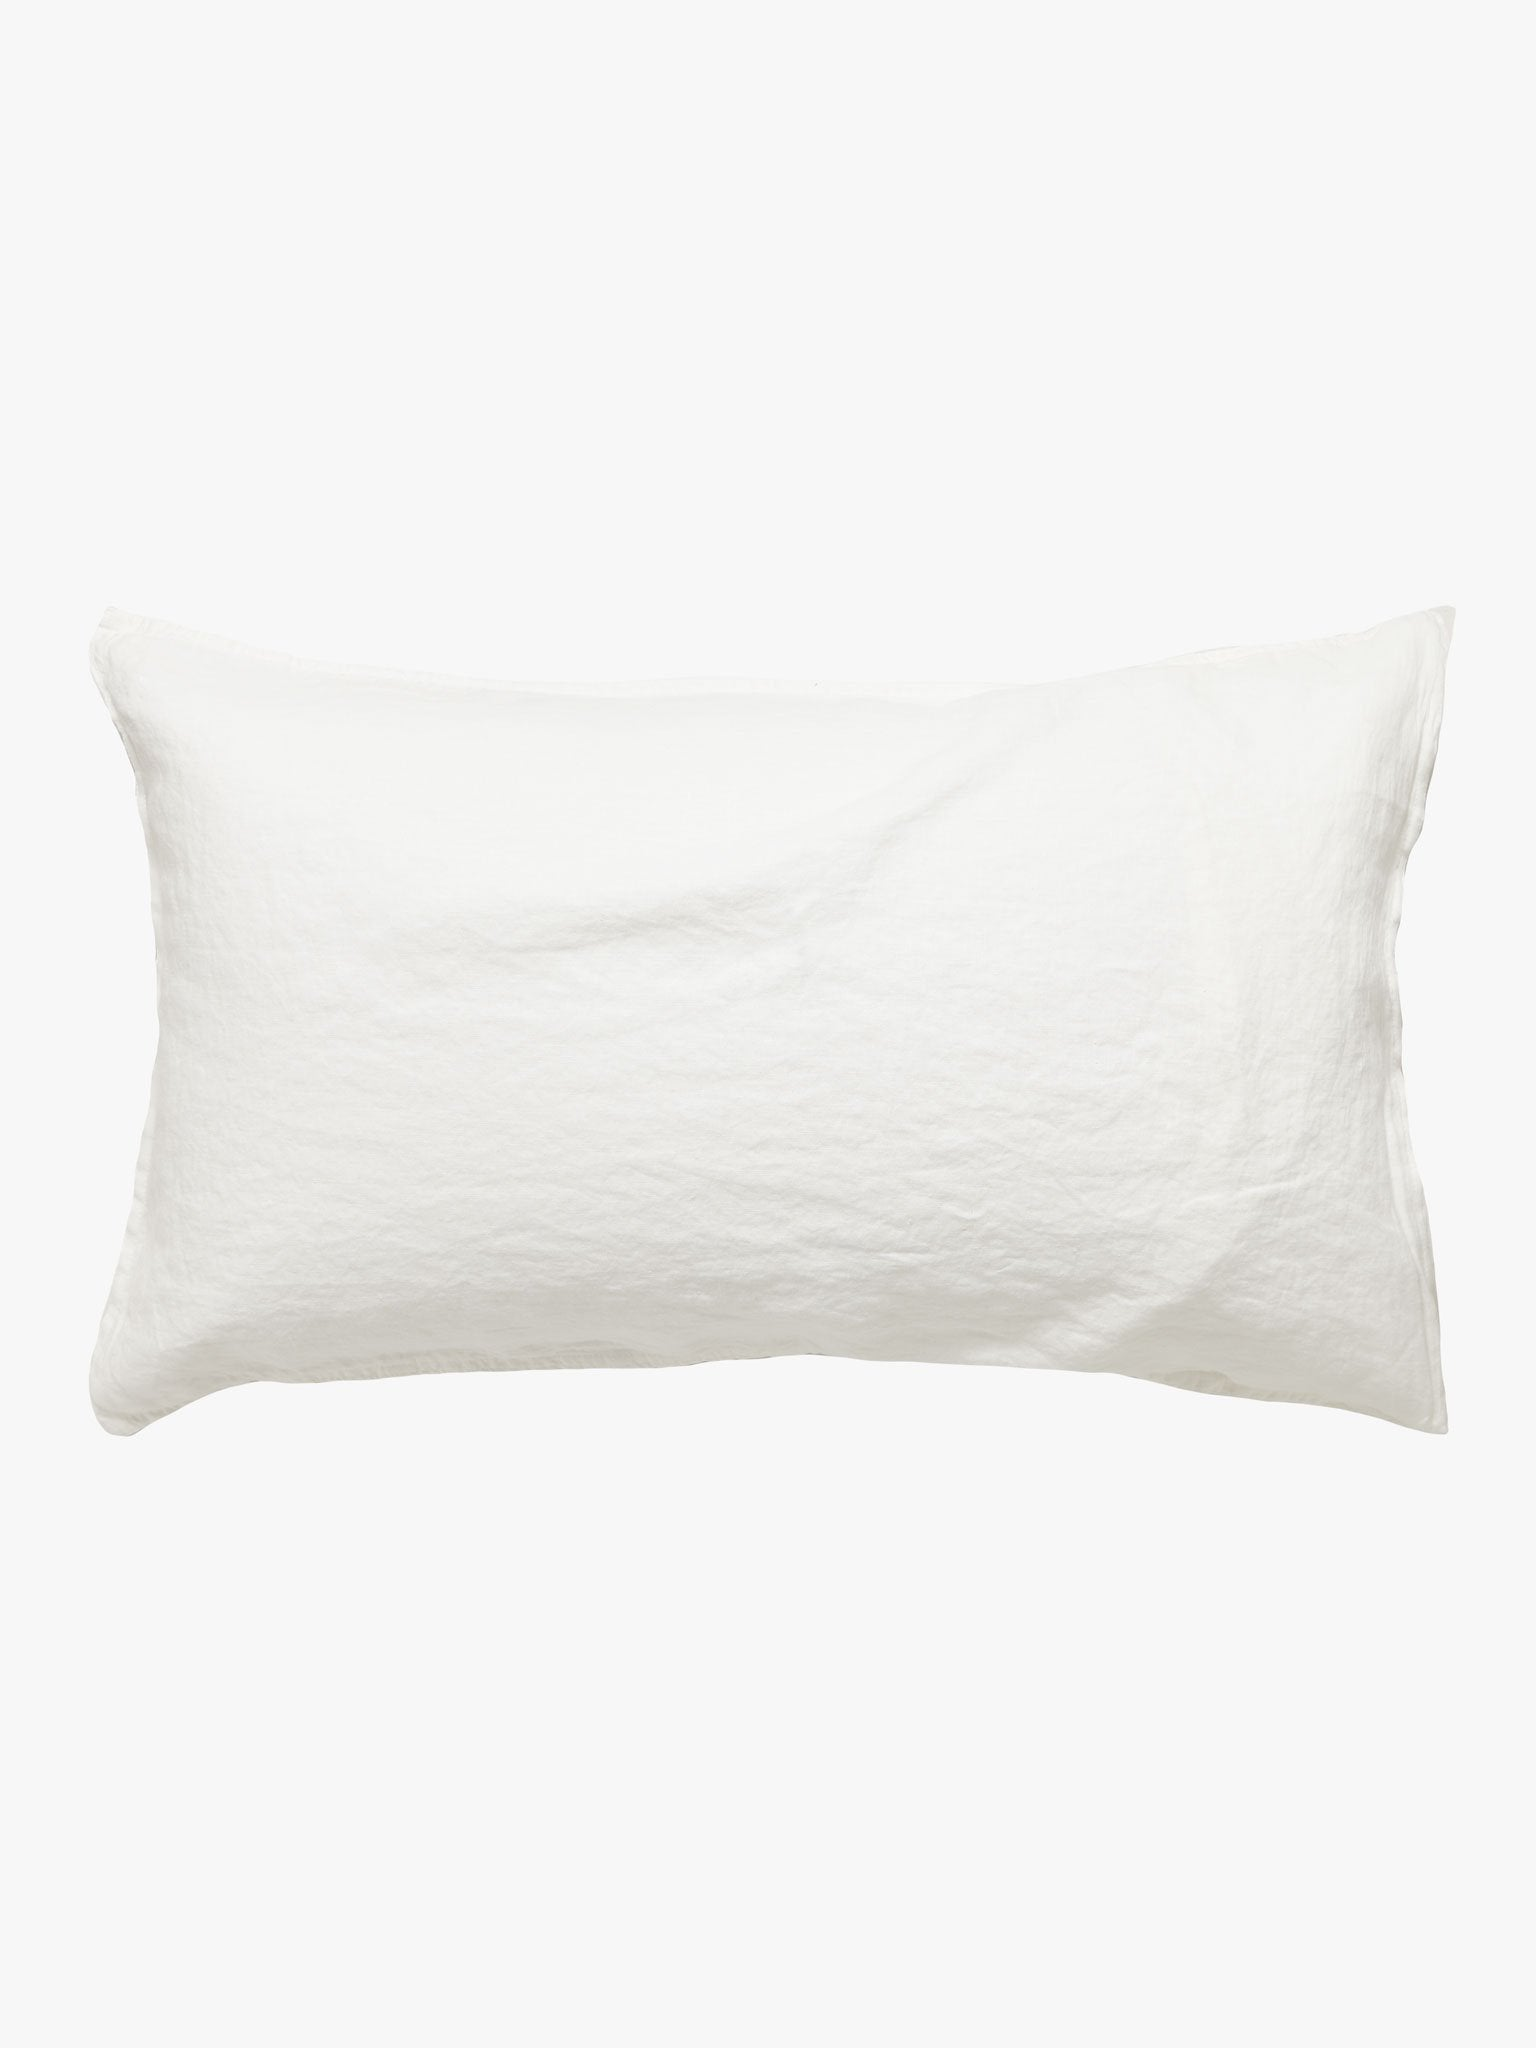 Mondo White French Linen Pillowcase Pillowcase L&M Home Standard (Pair)